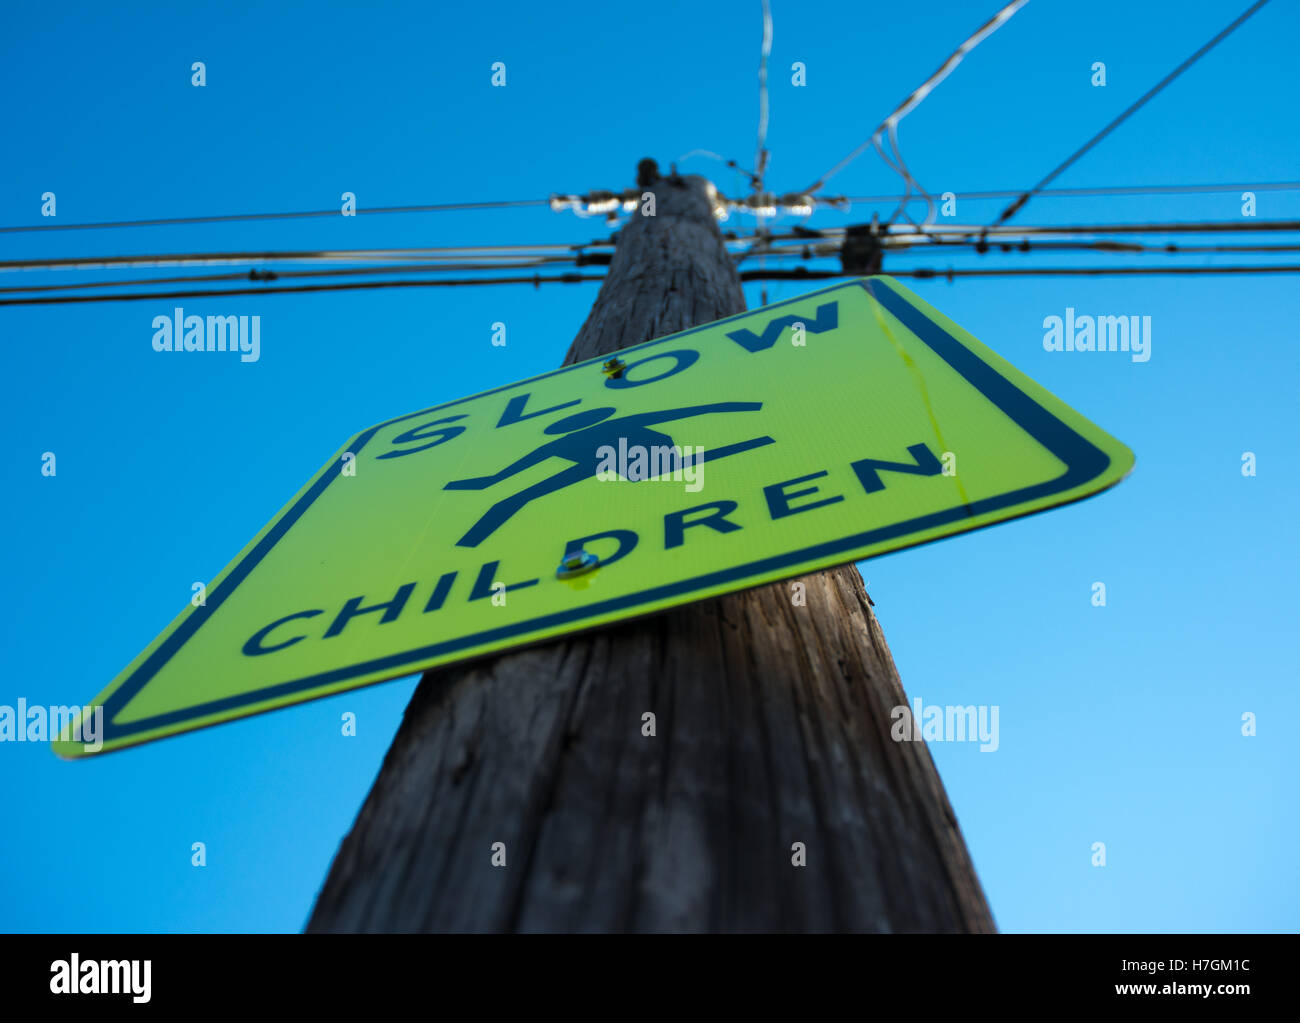 Electrical poll with a sign on it - Stock Image